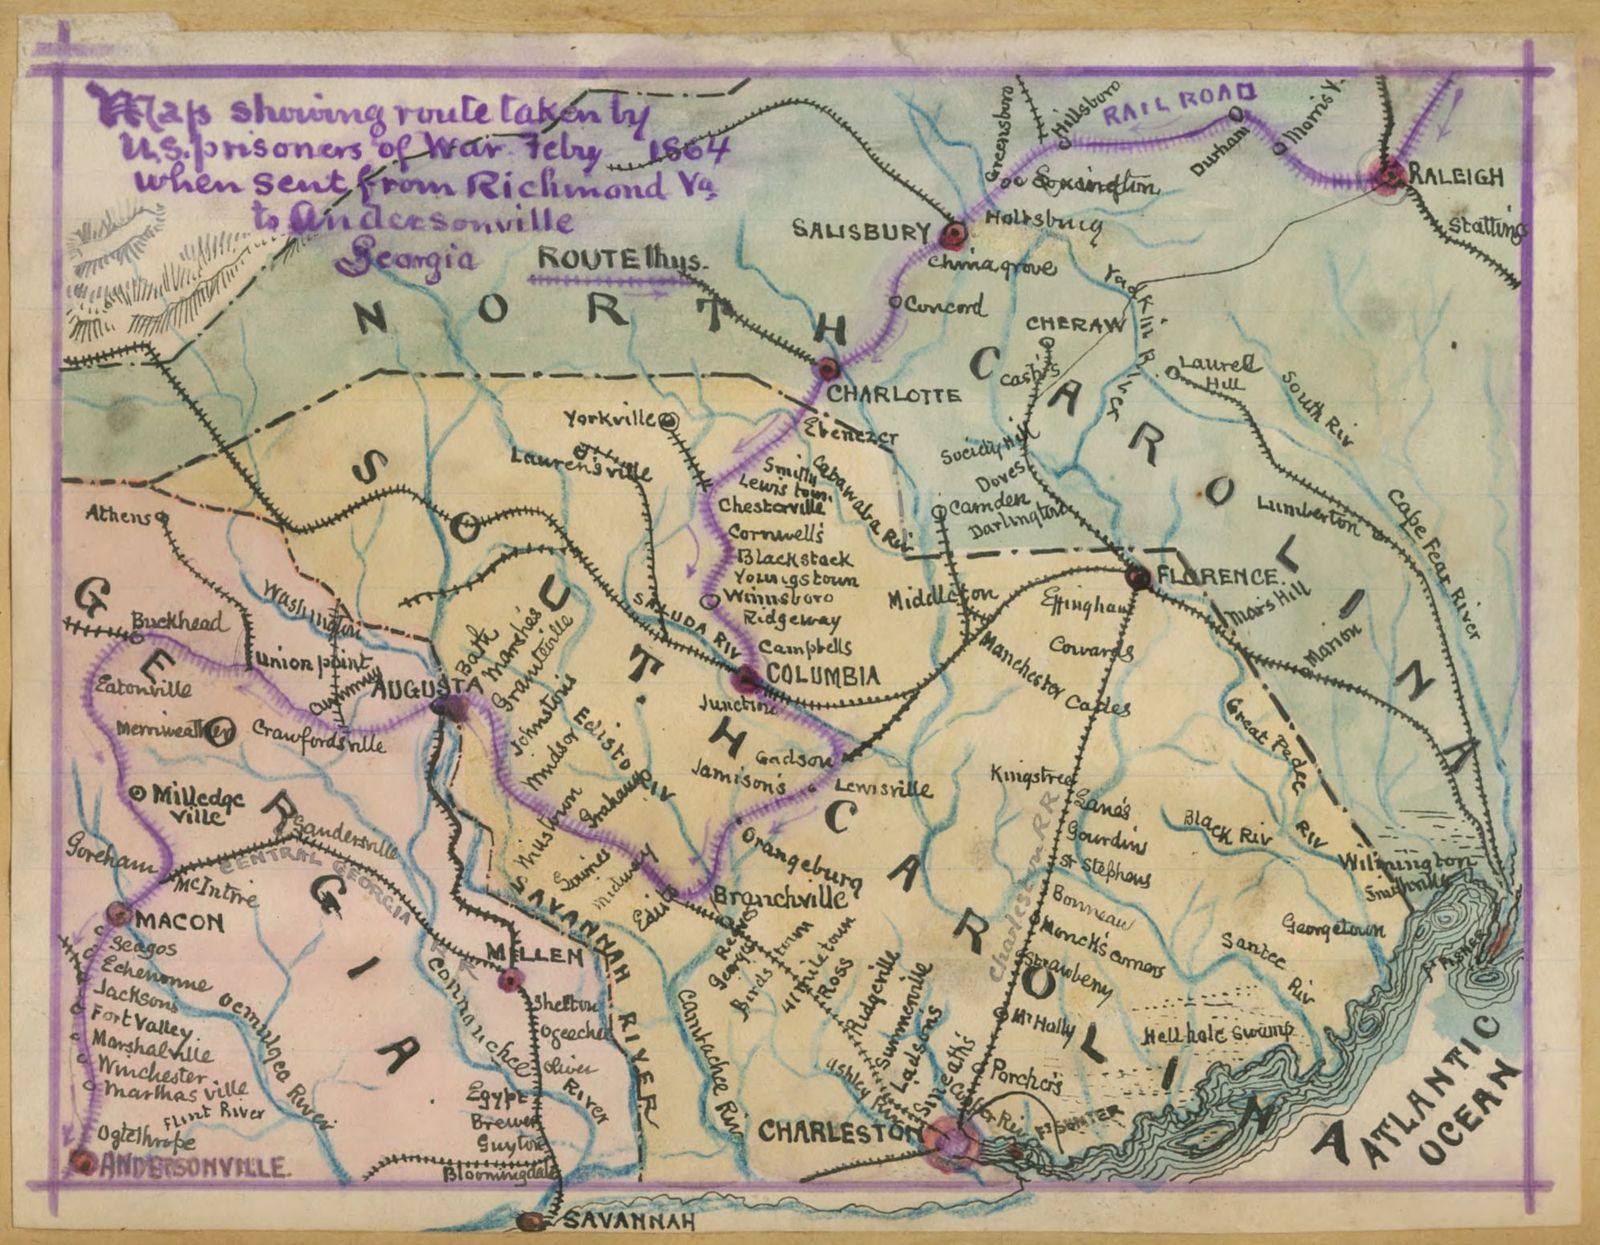 Map Showing Route Taken By Us Prisoners Of War Feby 1864 When - Us-map-1864